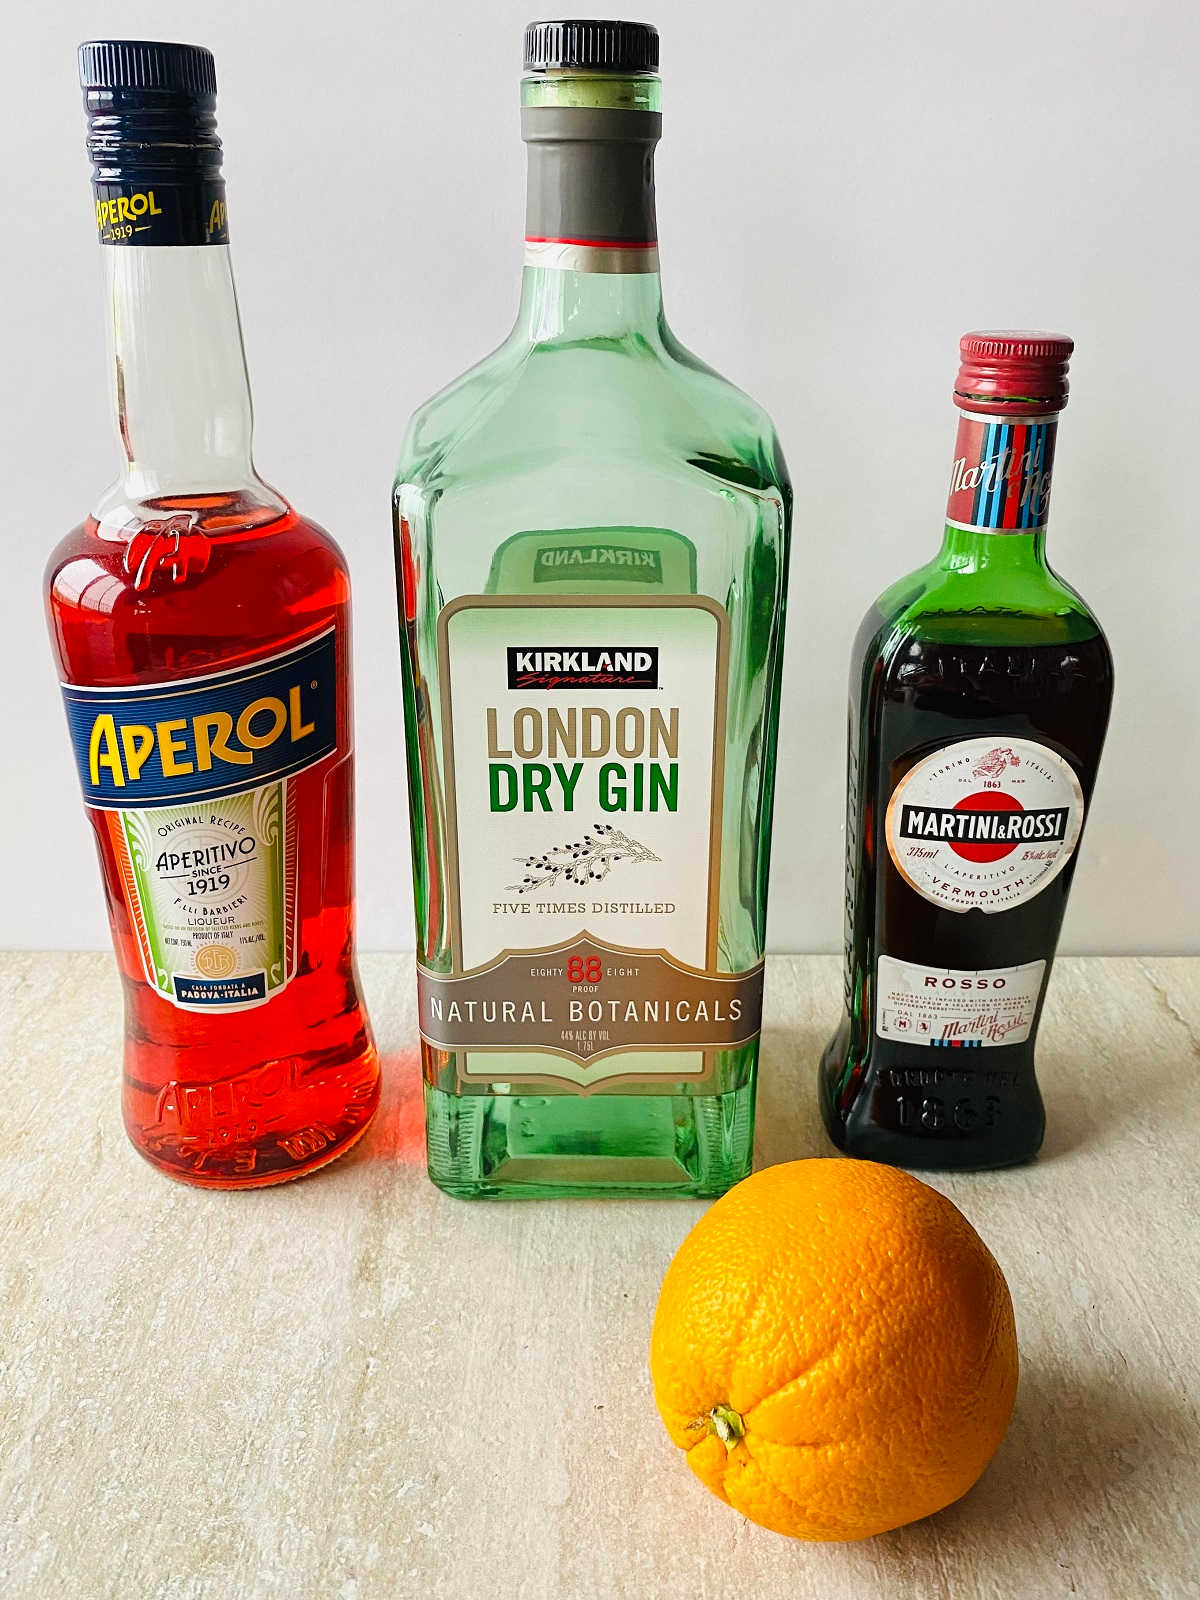 a bottle of aperol, gin, vermouth and an orange, ingredients to make aperol negroni